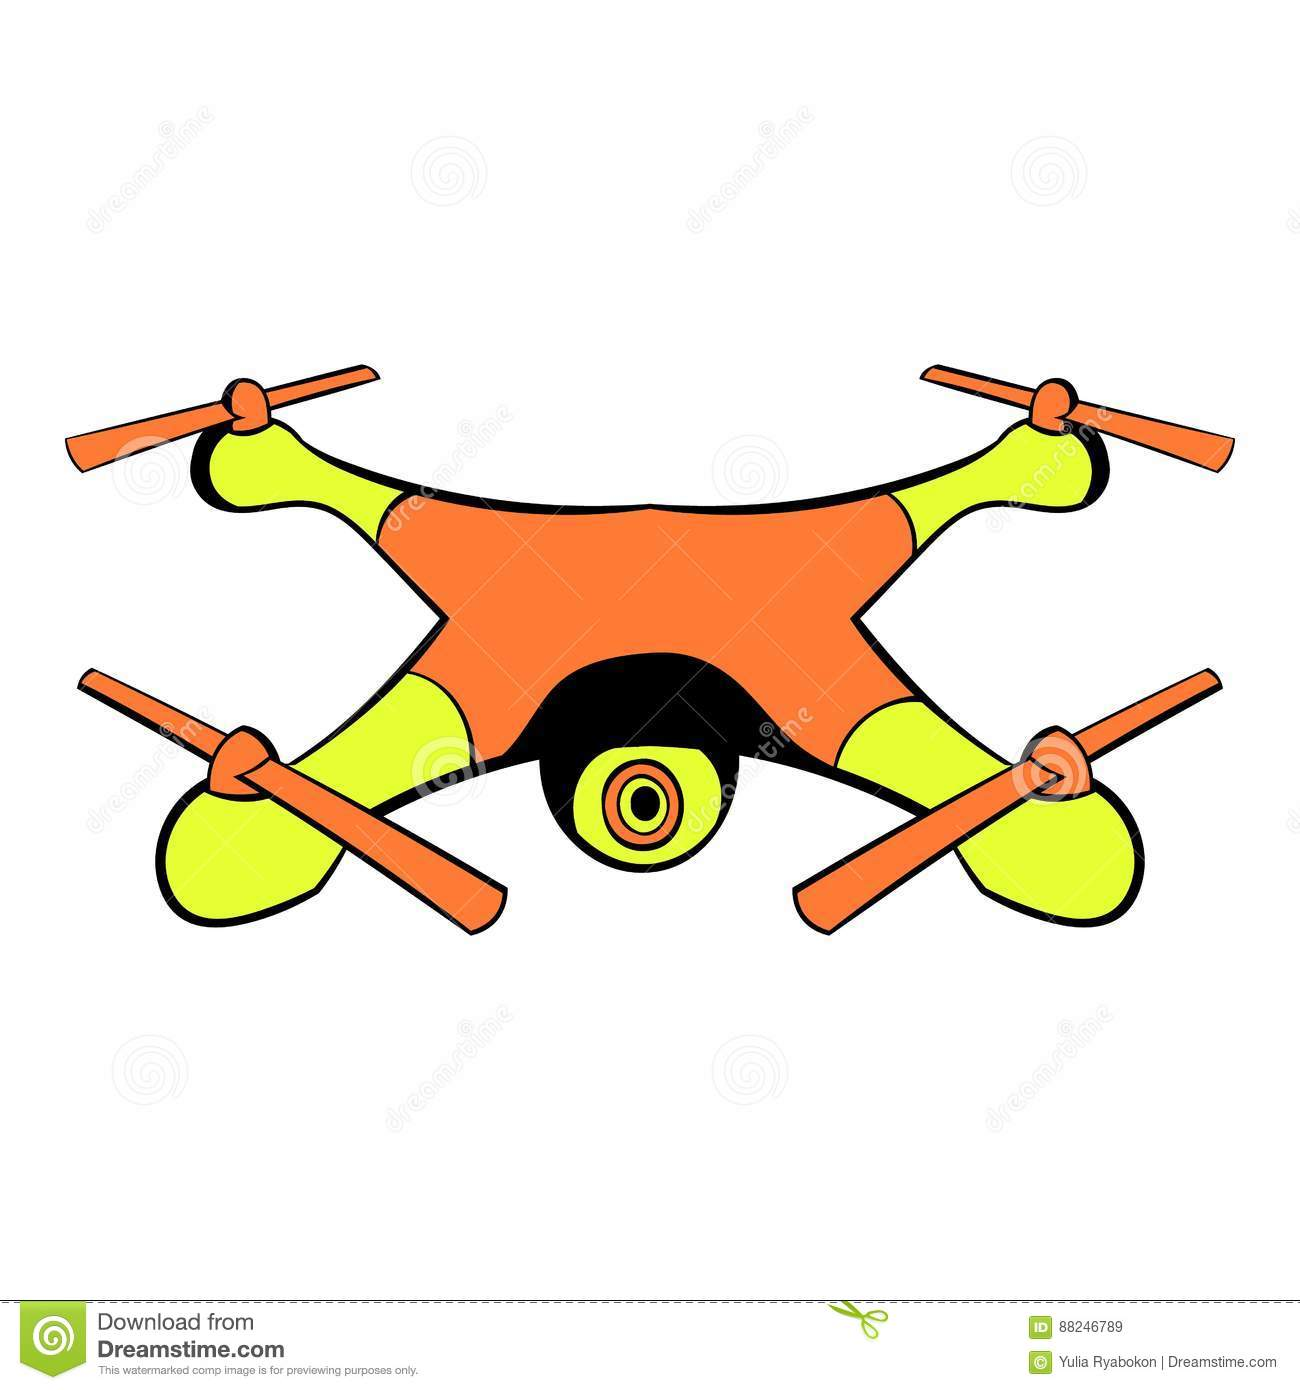 drone small with Stock Illustration Drone Icon Icon Cartoon Style Isolated Vector Illustration Image88246789 on Faa Safety Briefing Aviation Careers also Itel Changes Gears Launches Smartphone S41 Set Challenge Xiaomi Offline Sales further Witch Doctor 2 besides Mumbais Smart Slum furthermore Dji Mavic Air Official Launch.